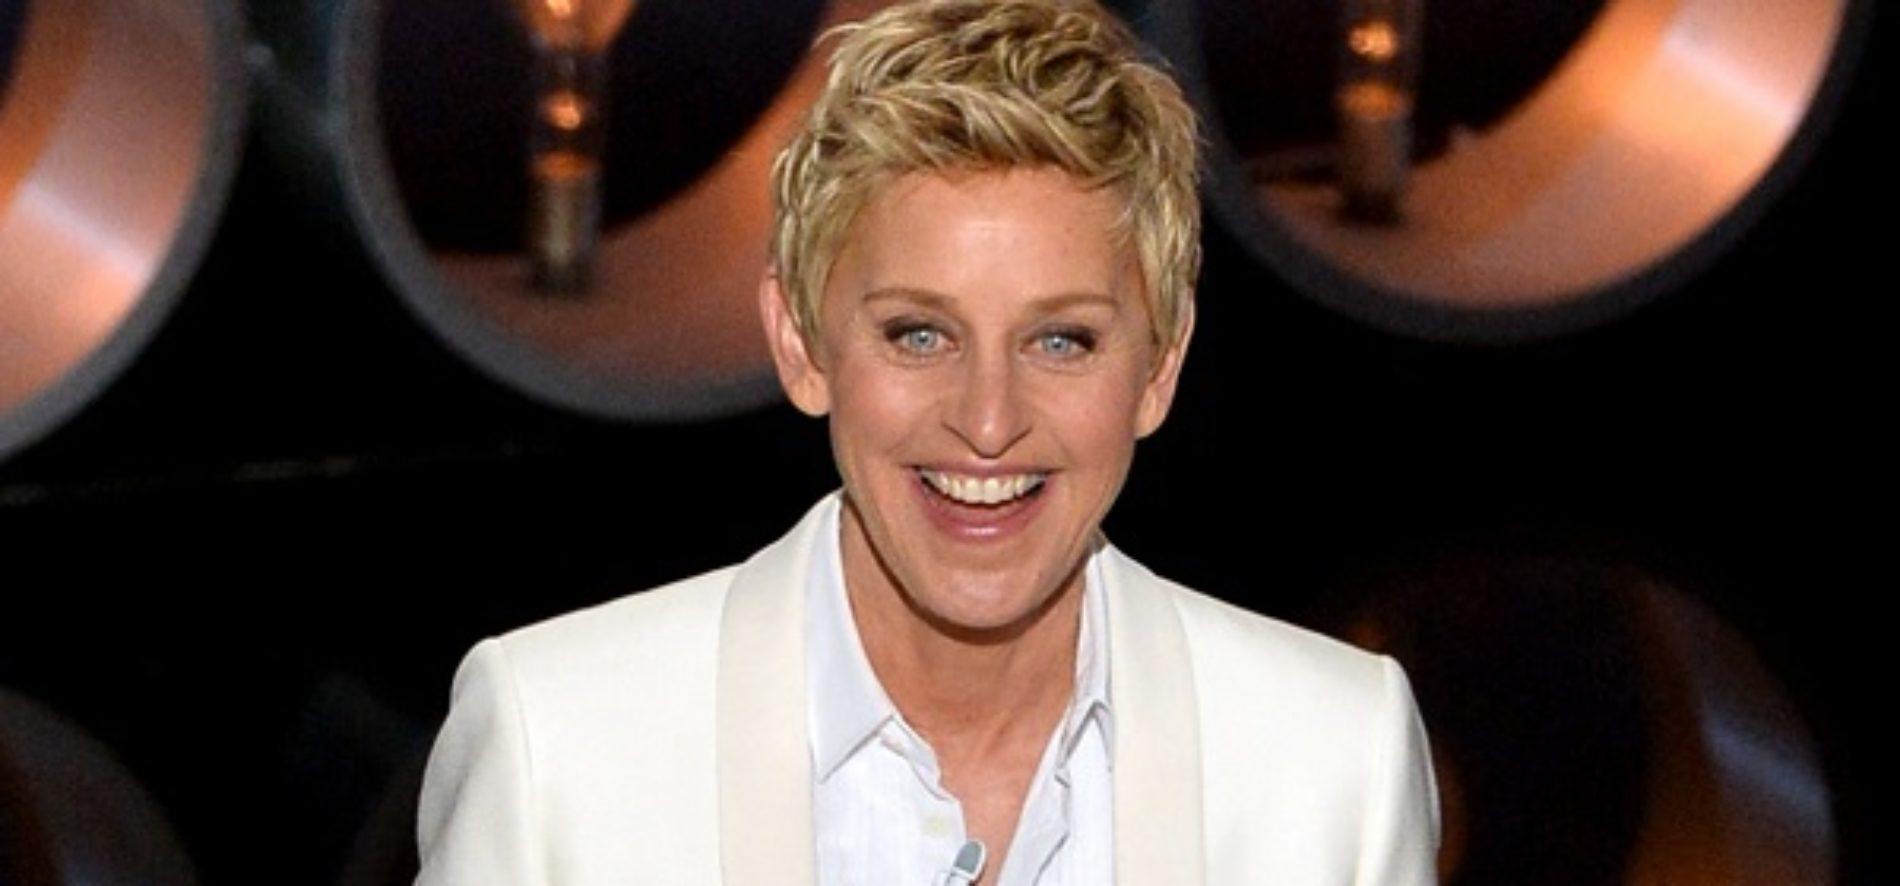 Ellen DeGeneres Responds to 'Gay Agenda' Accusations With Humor